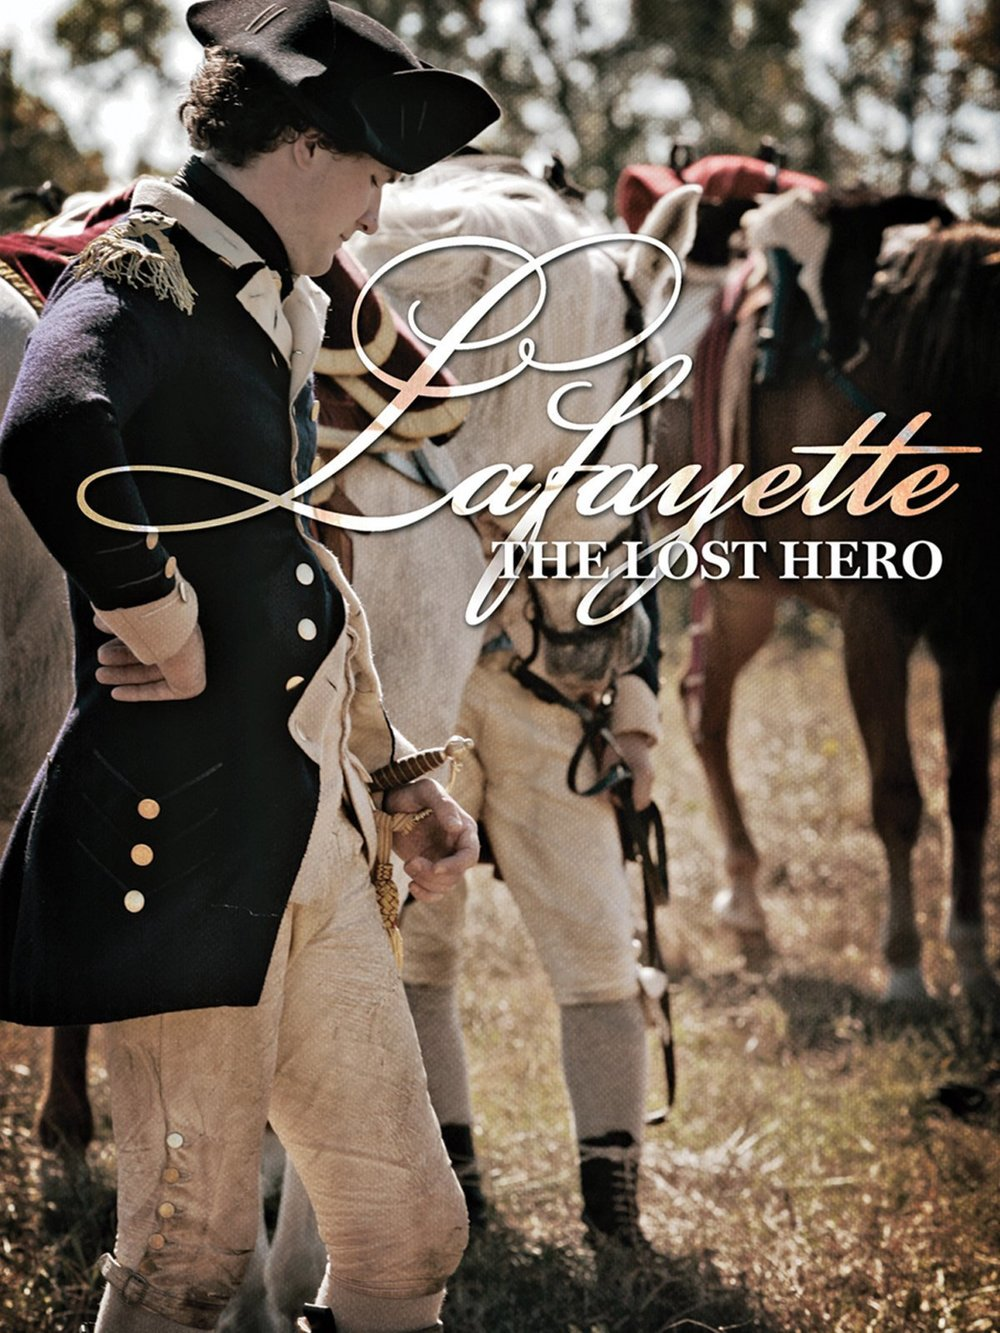 Lafayette the Lost Hero Poster.jpg